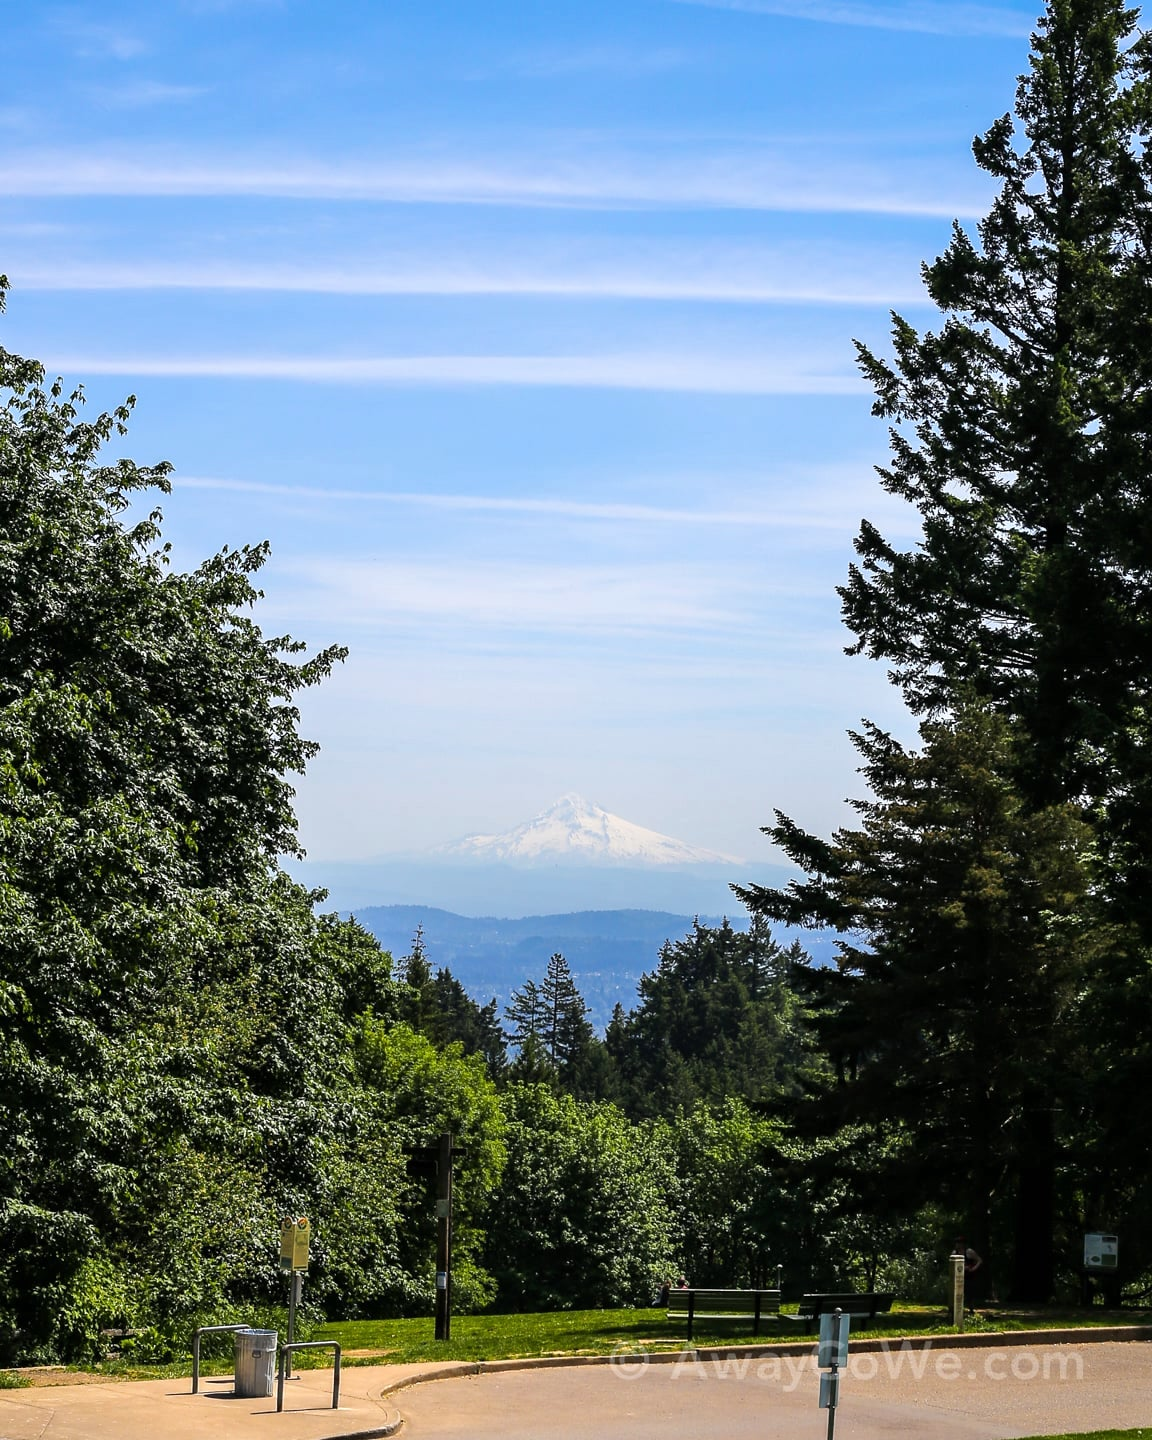 Mt Hood viewed from Council Crest Park Portland Oregon